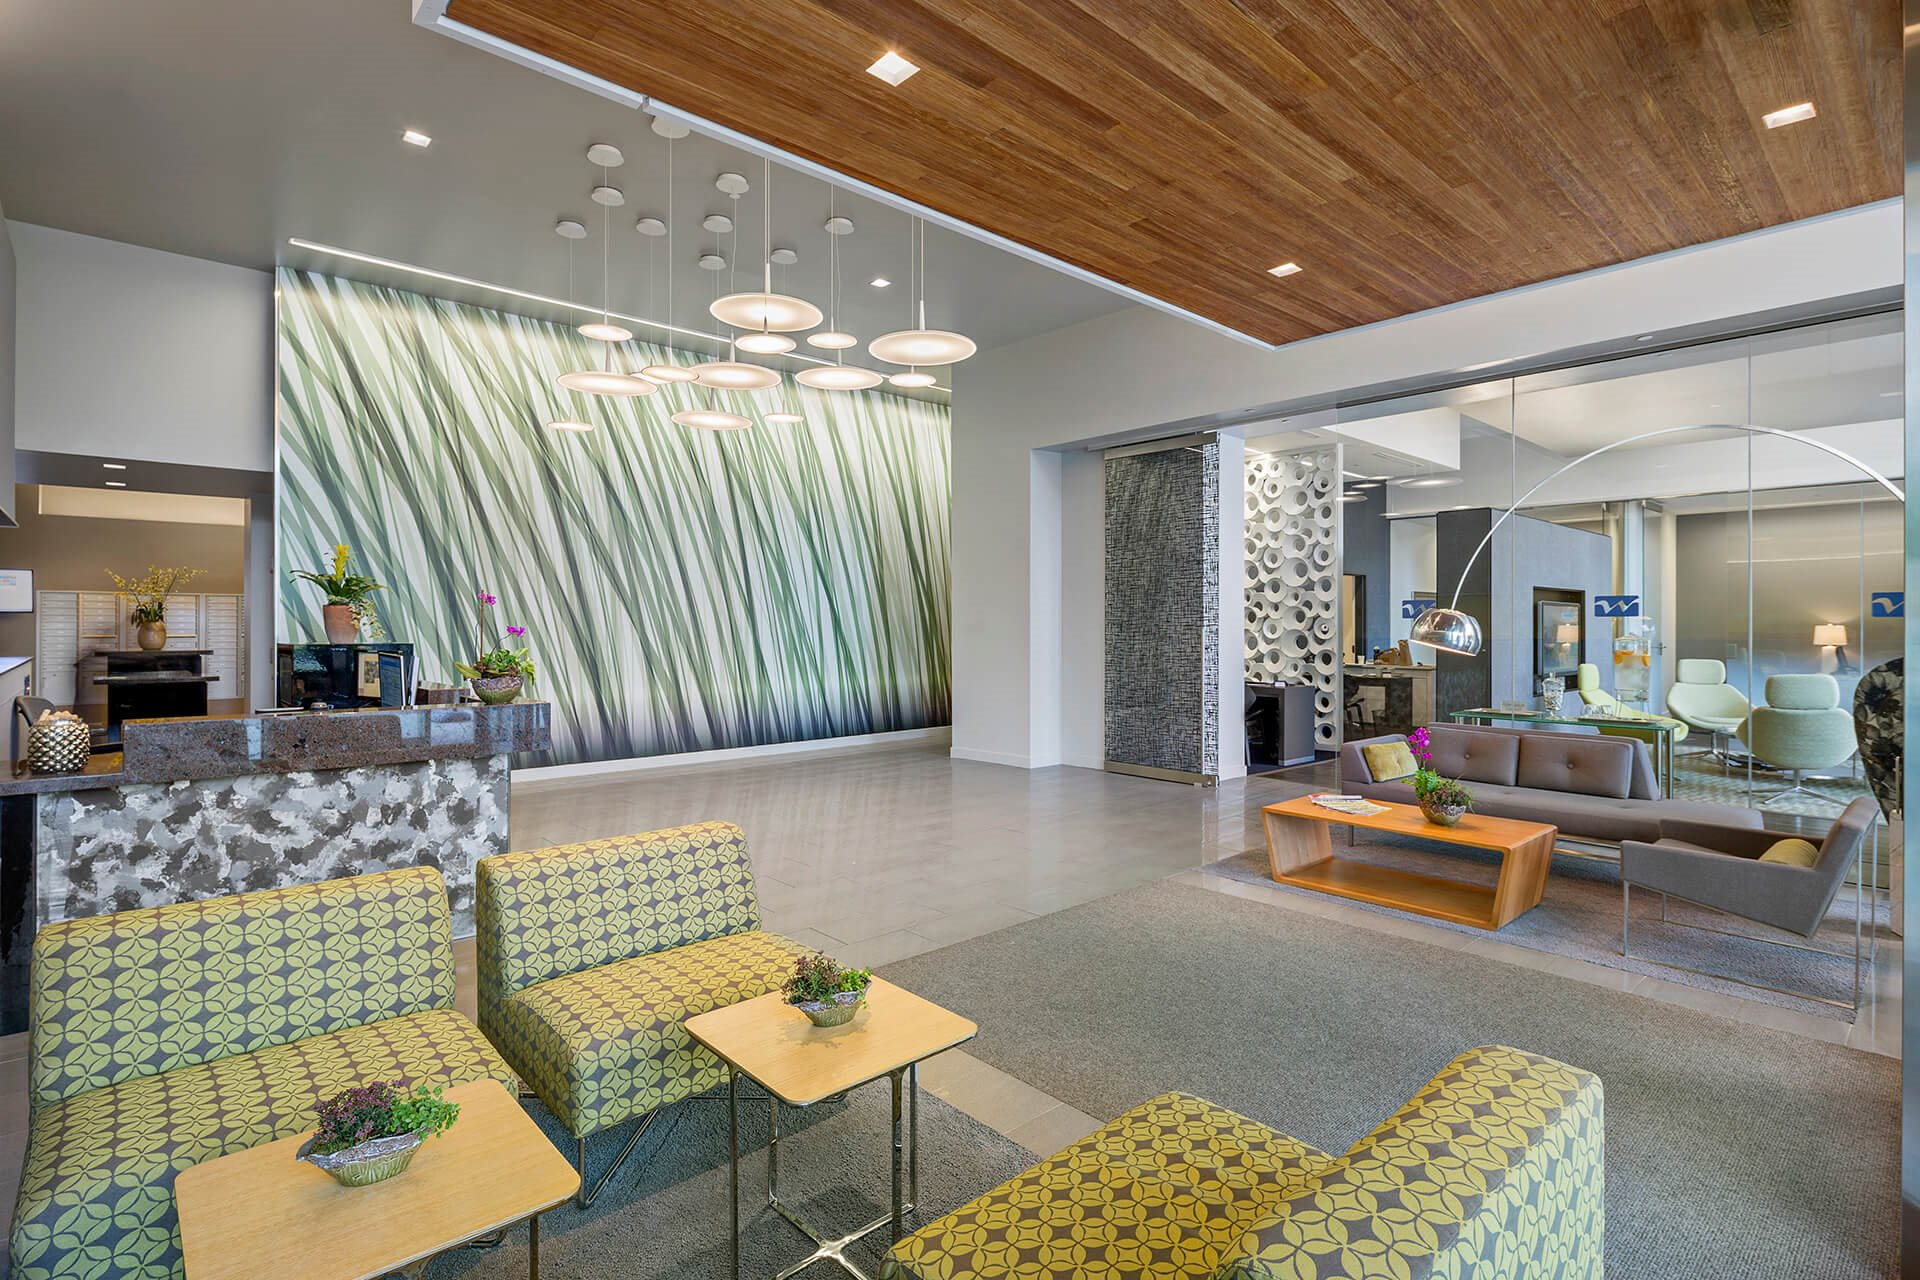 Hotel Style Lobby at Waterside Place by Windsor, 02210, MA